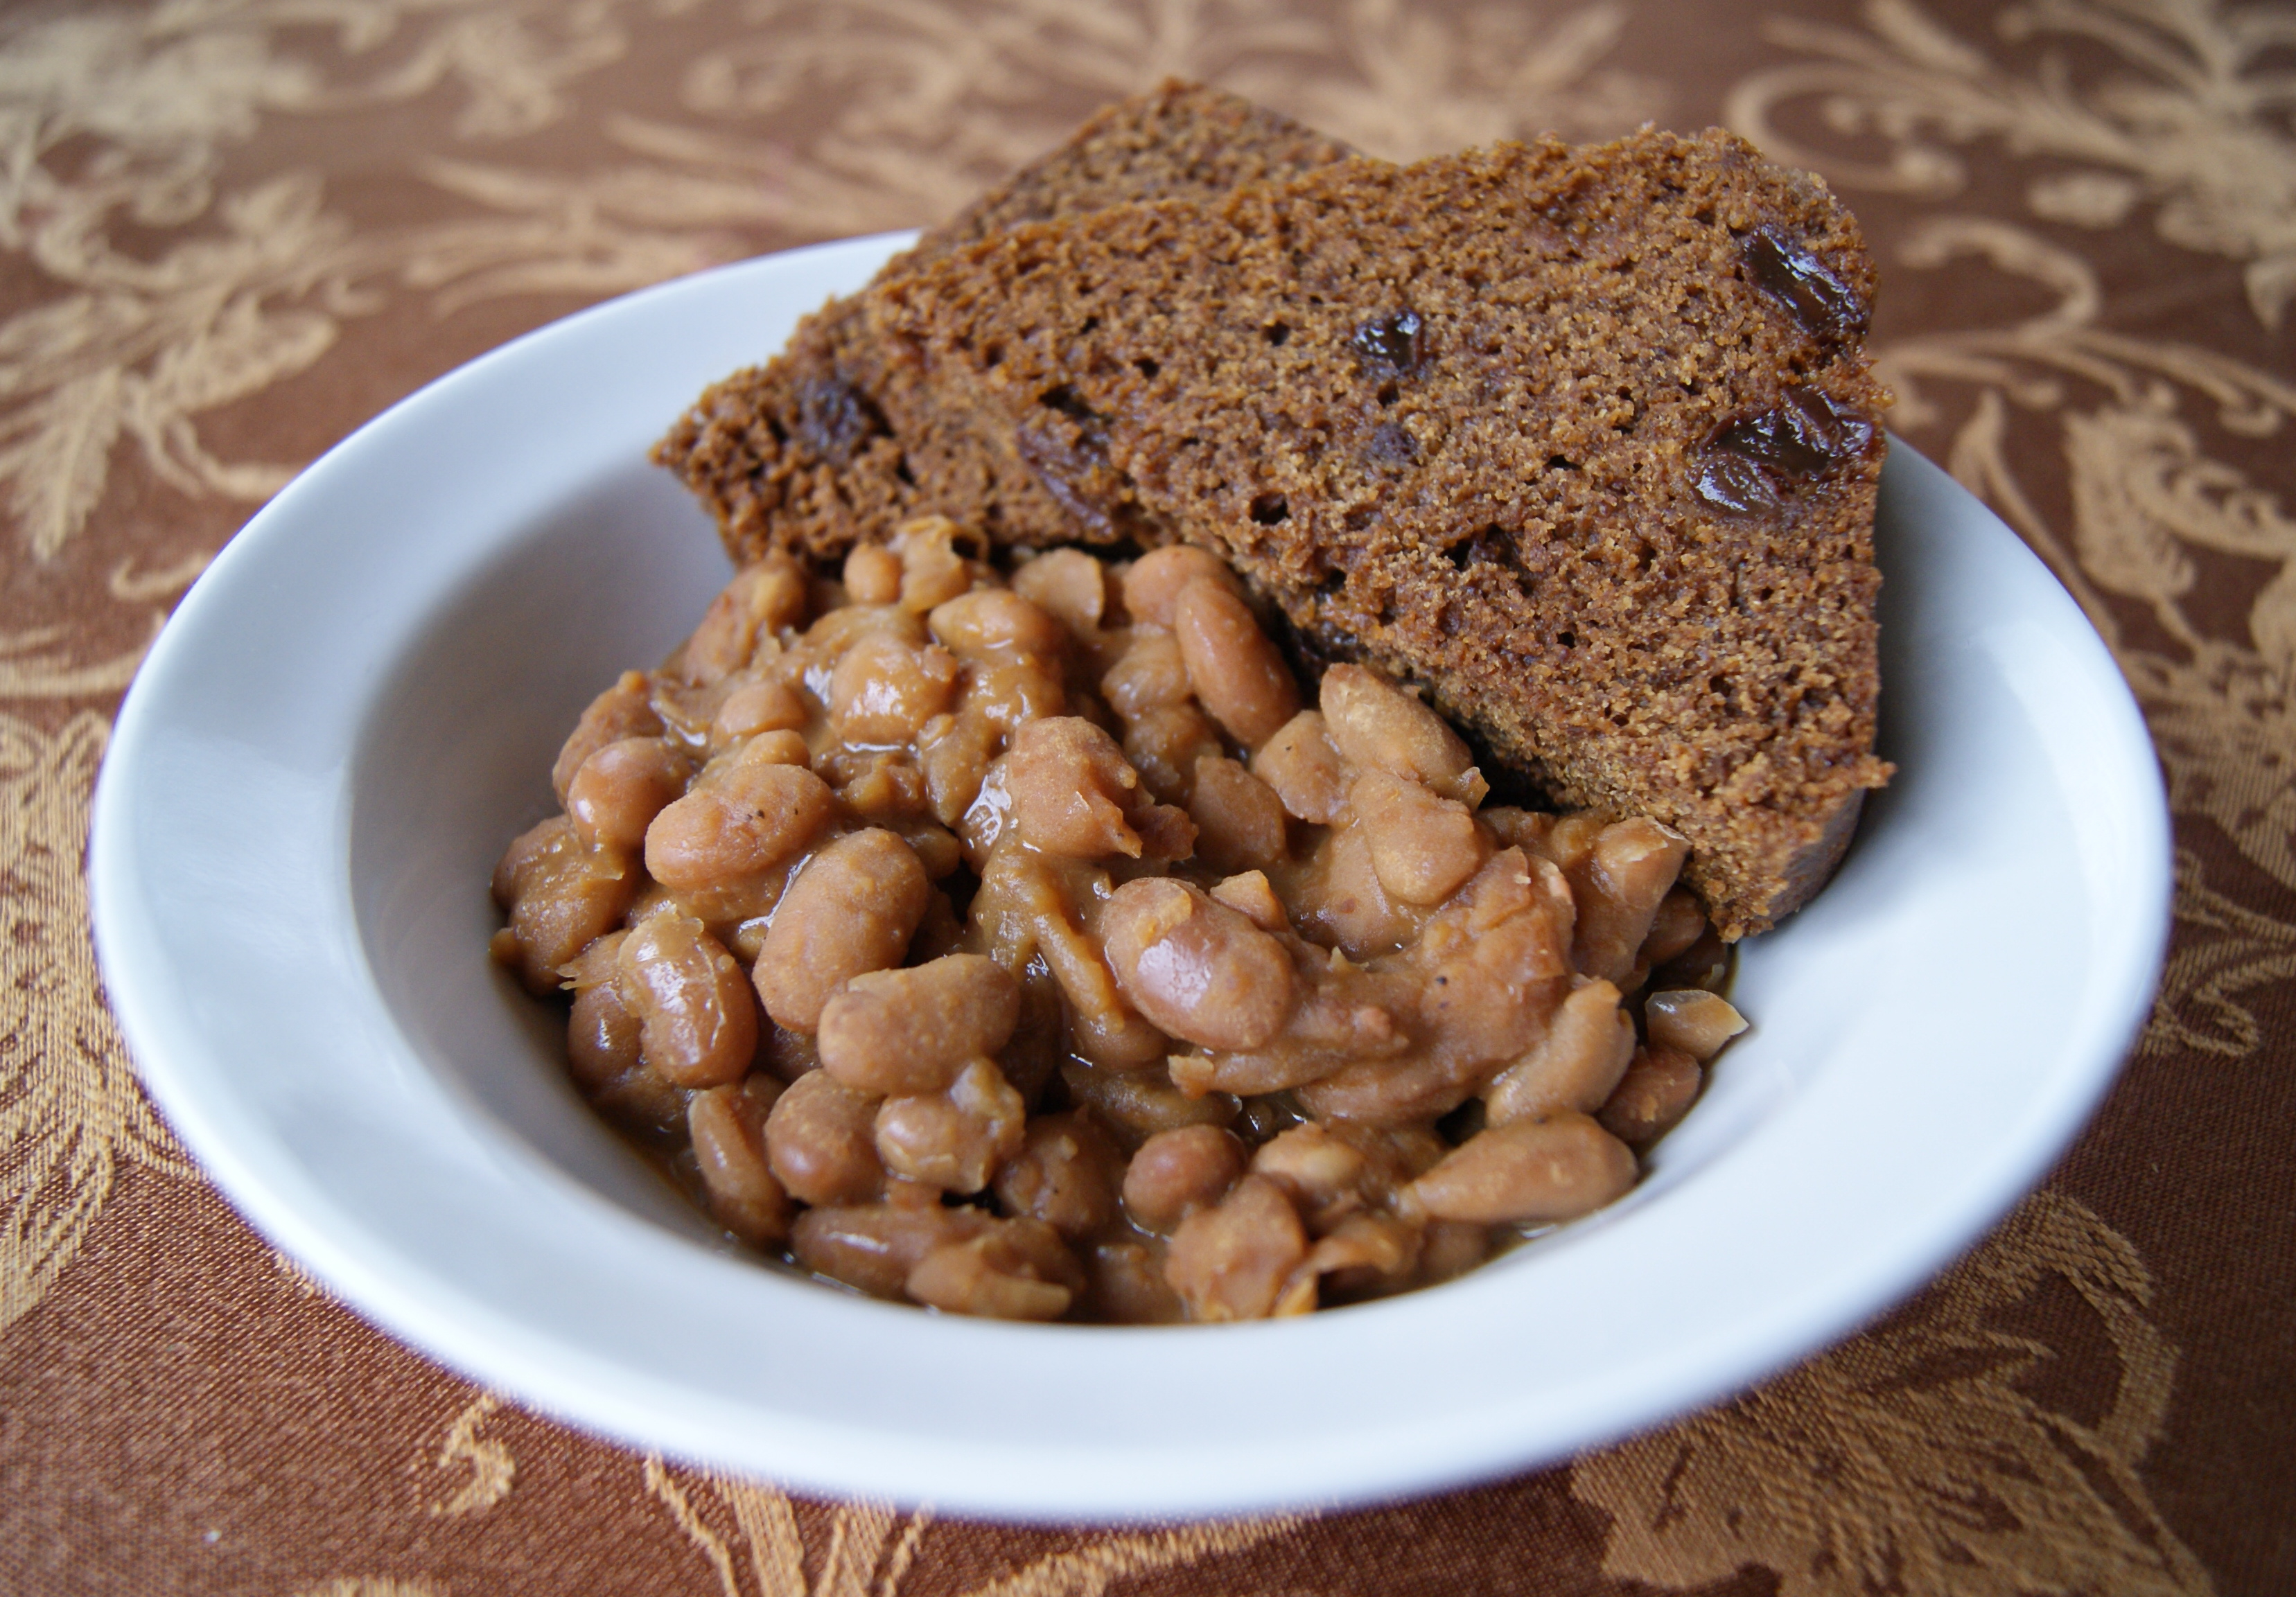 Boston Baked Beans and Brown Bread | A Healthy Abundance